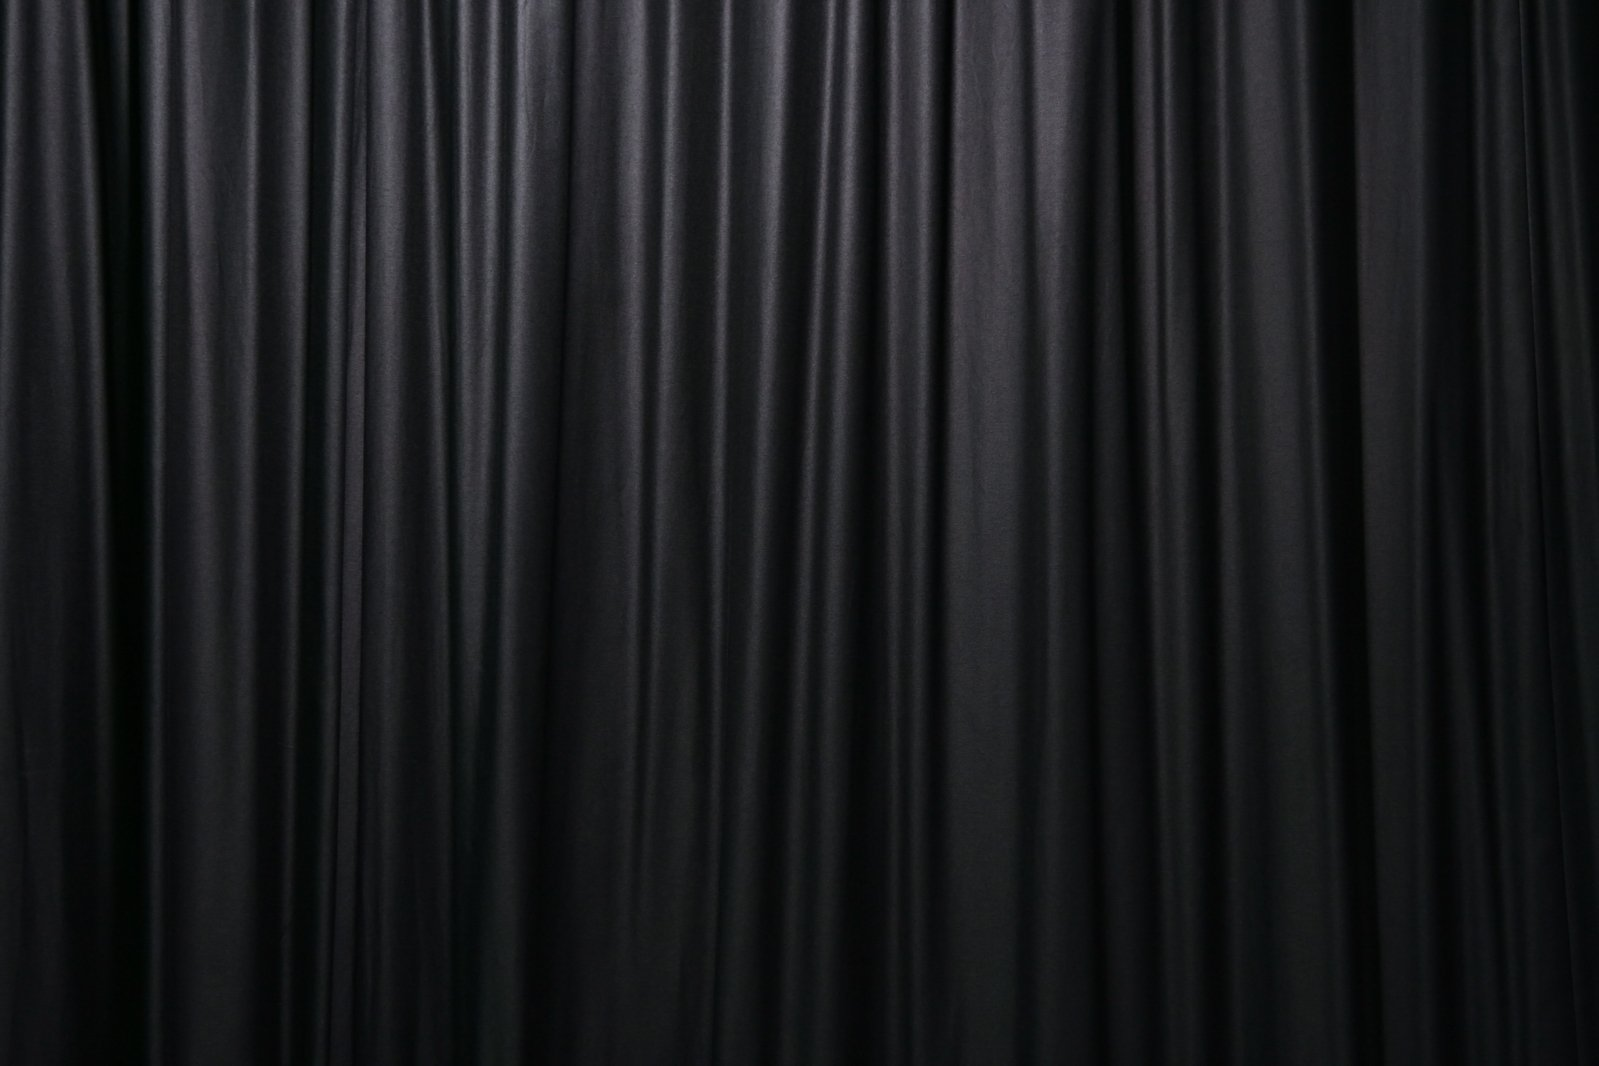 Schwarzer Vorhang Black Curtain Photos 1159588 Freeimages